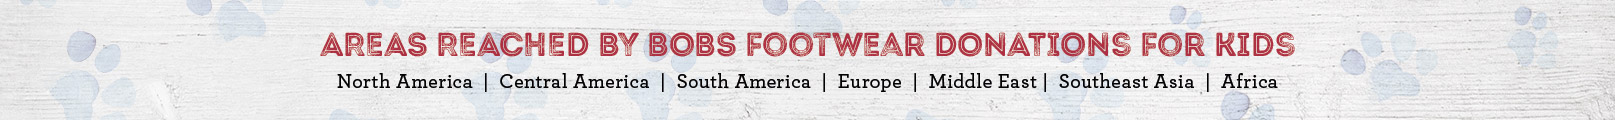 Areas Reached by Bobs Footwear donations for kids: North America, Central Americal, South America, Europe, Middle East, Southeast Asia, Africa